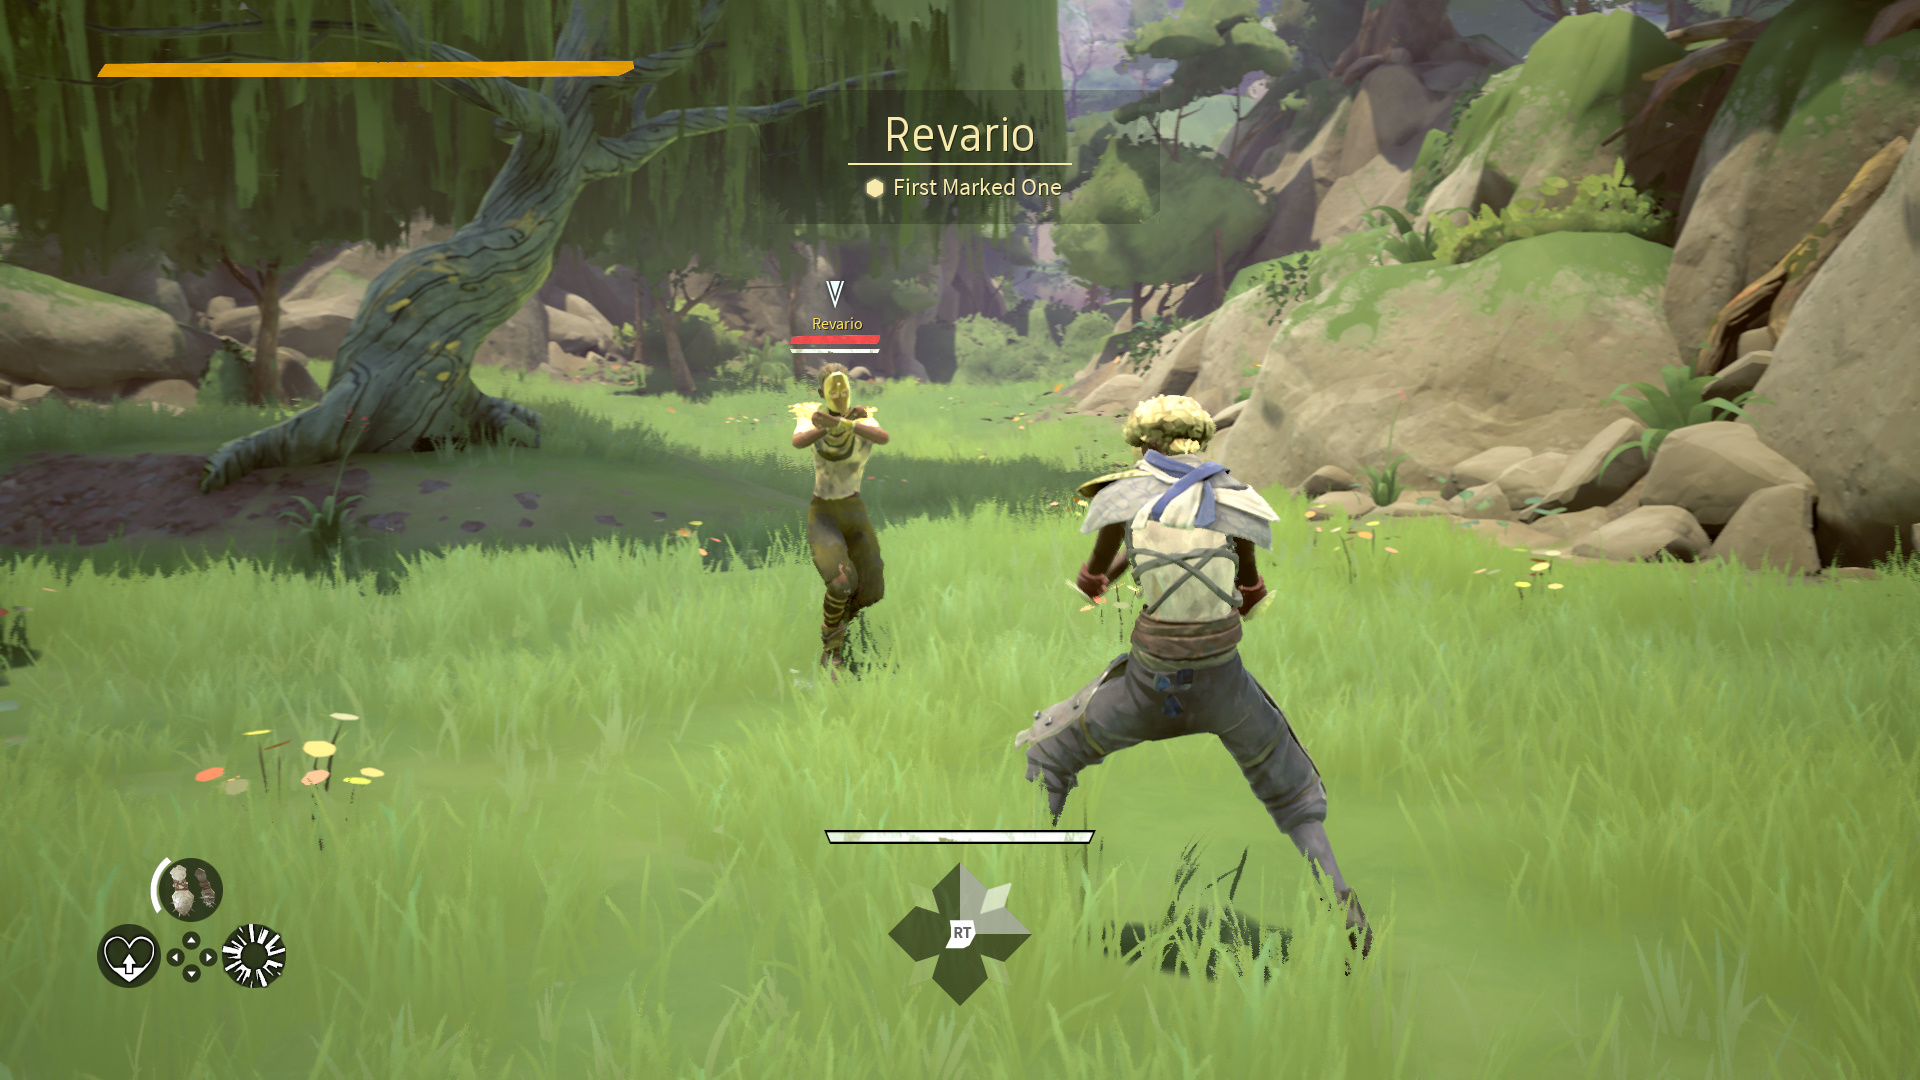 Below, you'll find the steps needed to locate every Marked One in Absolver